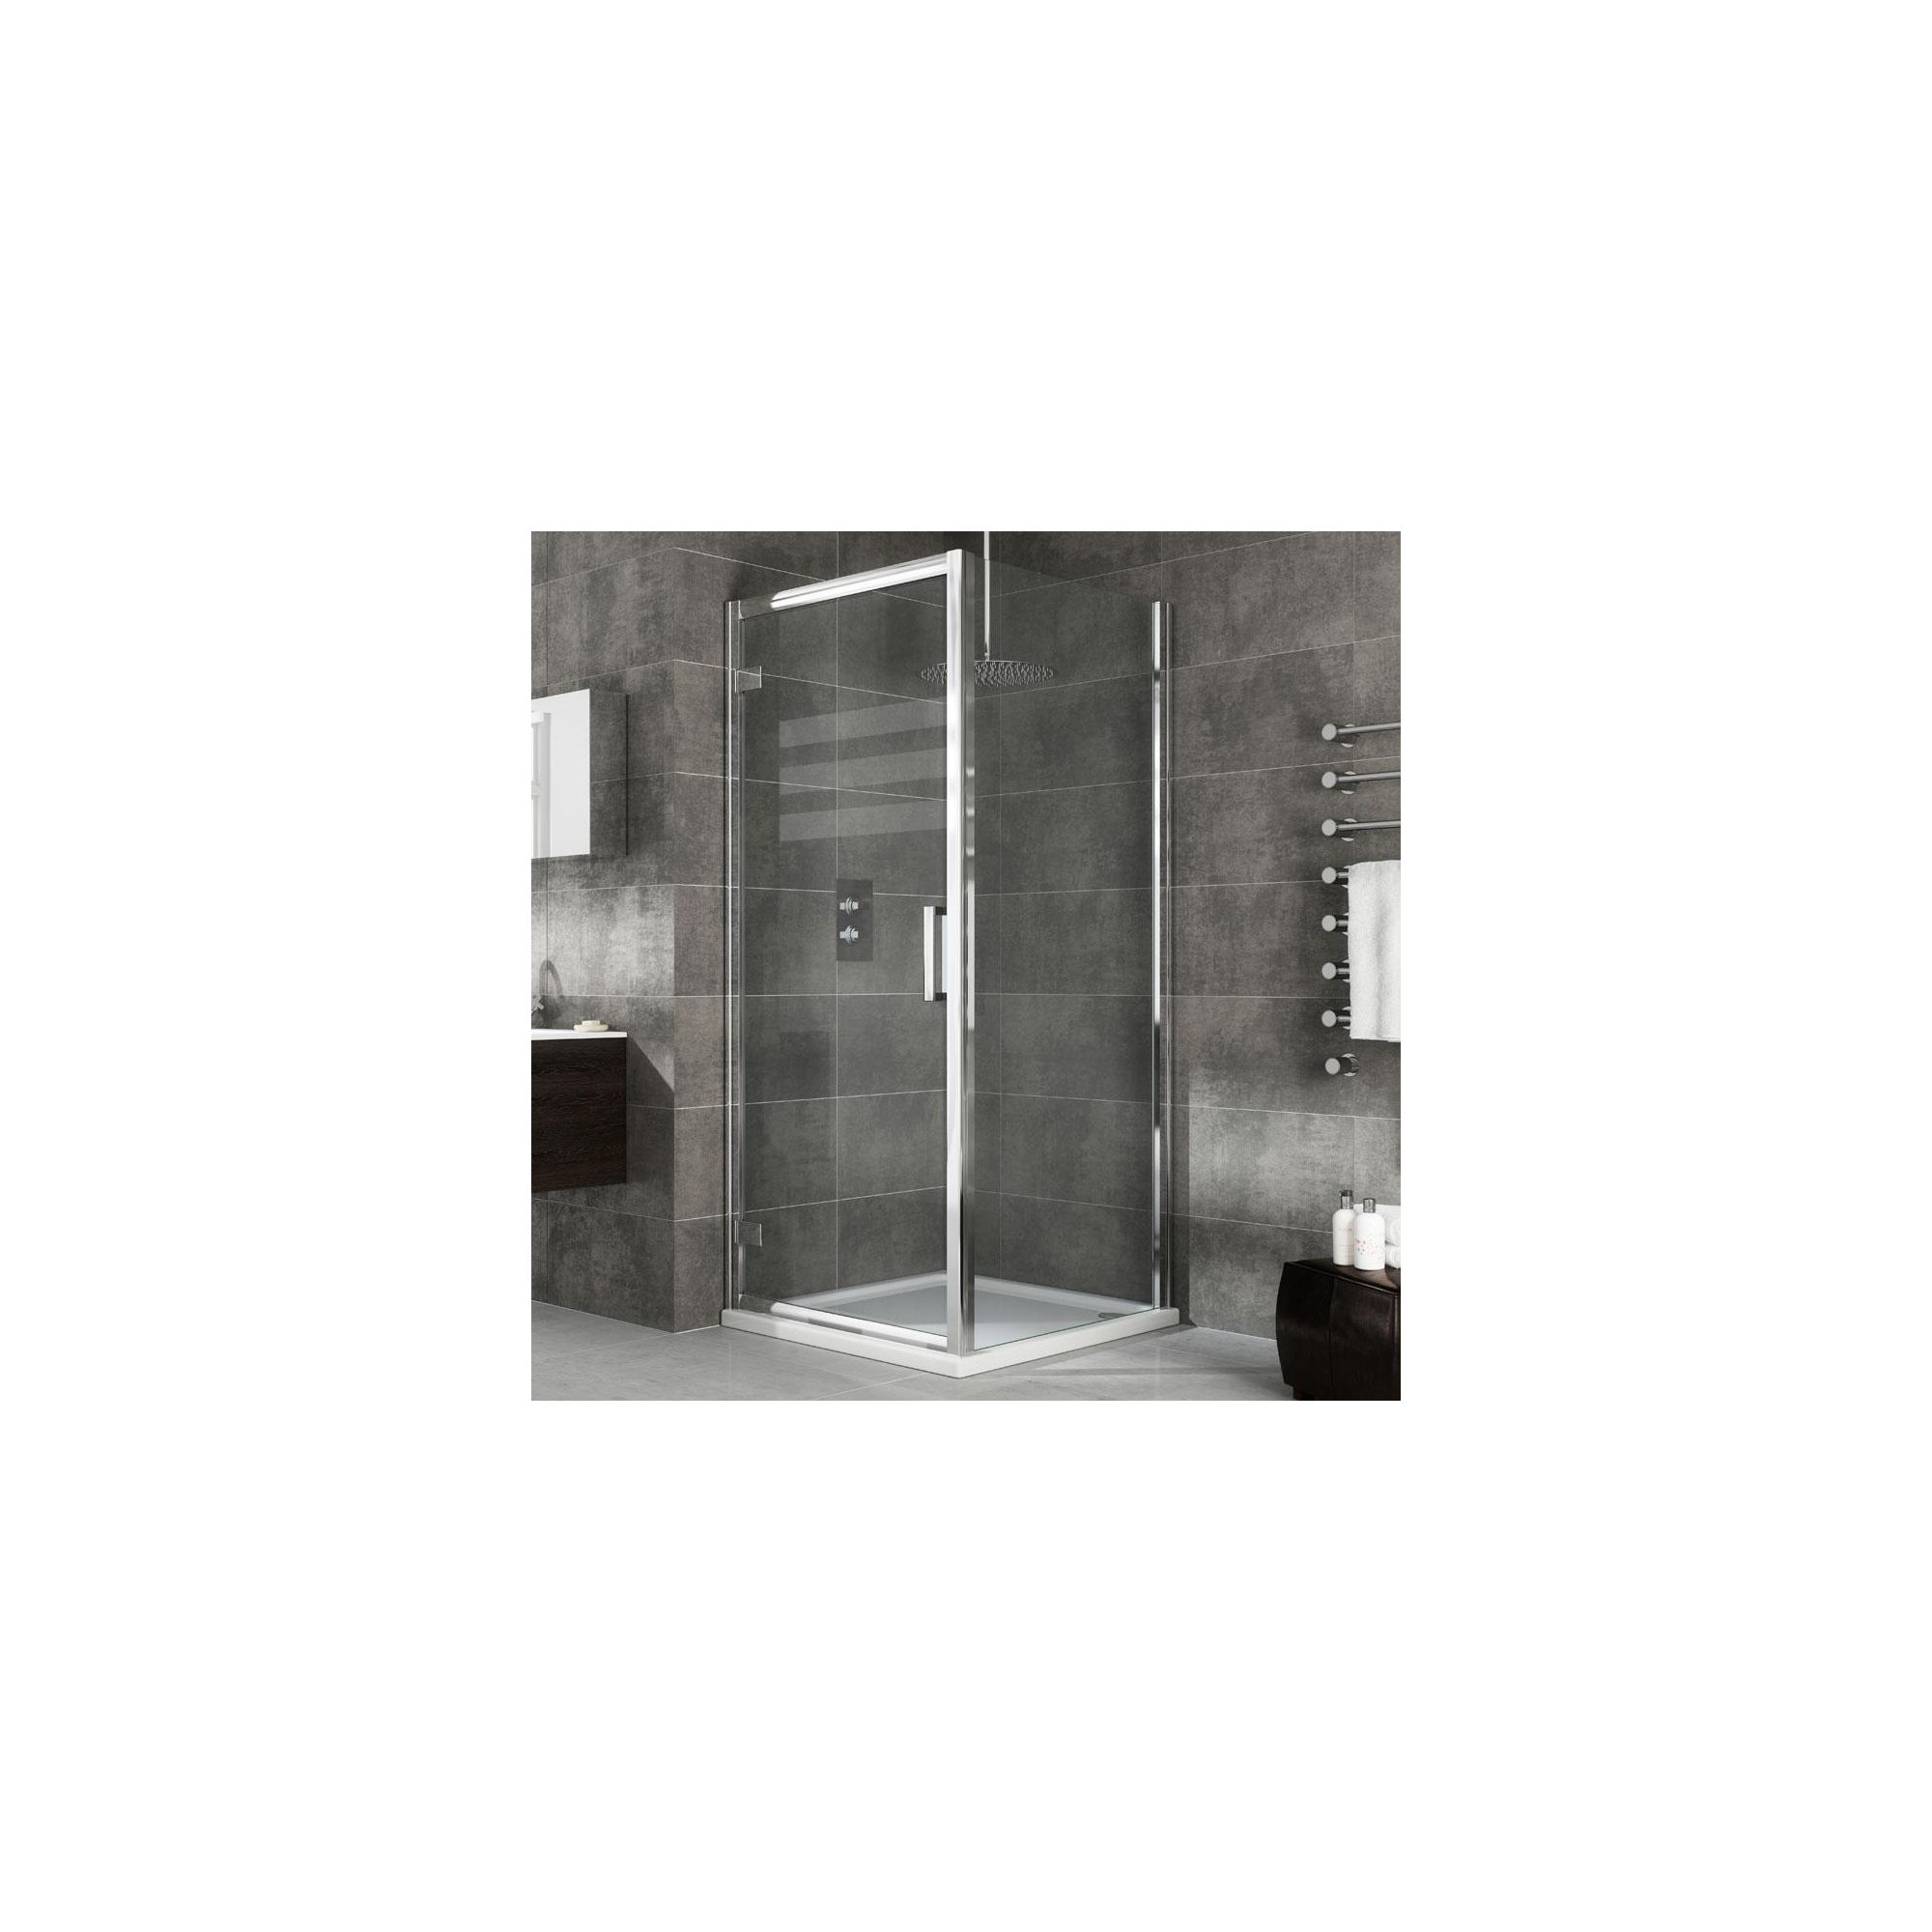 Elemis Eternity Hinged Door Shower Enclosure, 800mm x 800mm, 8mm Glass, Low Profile Tray at Tesco Direct